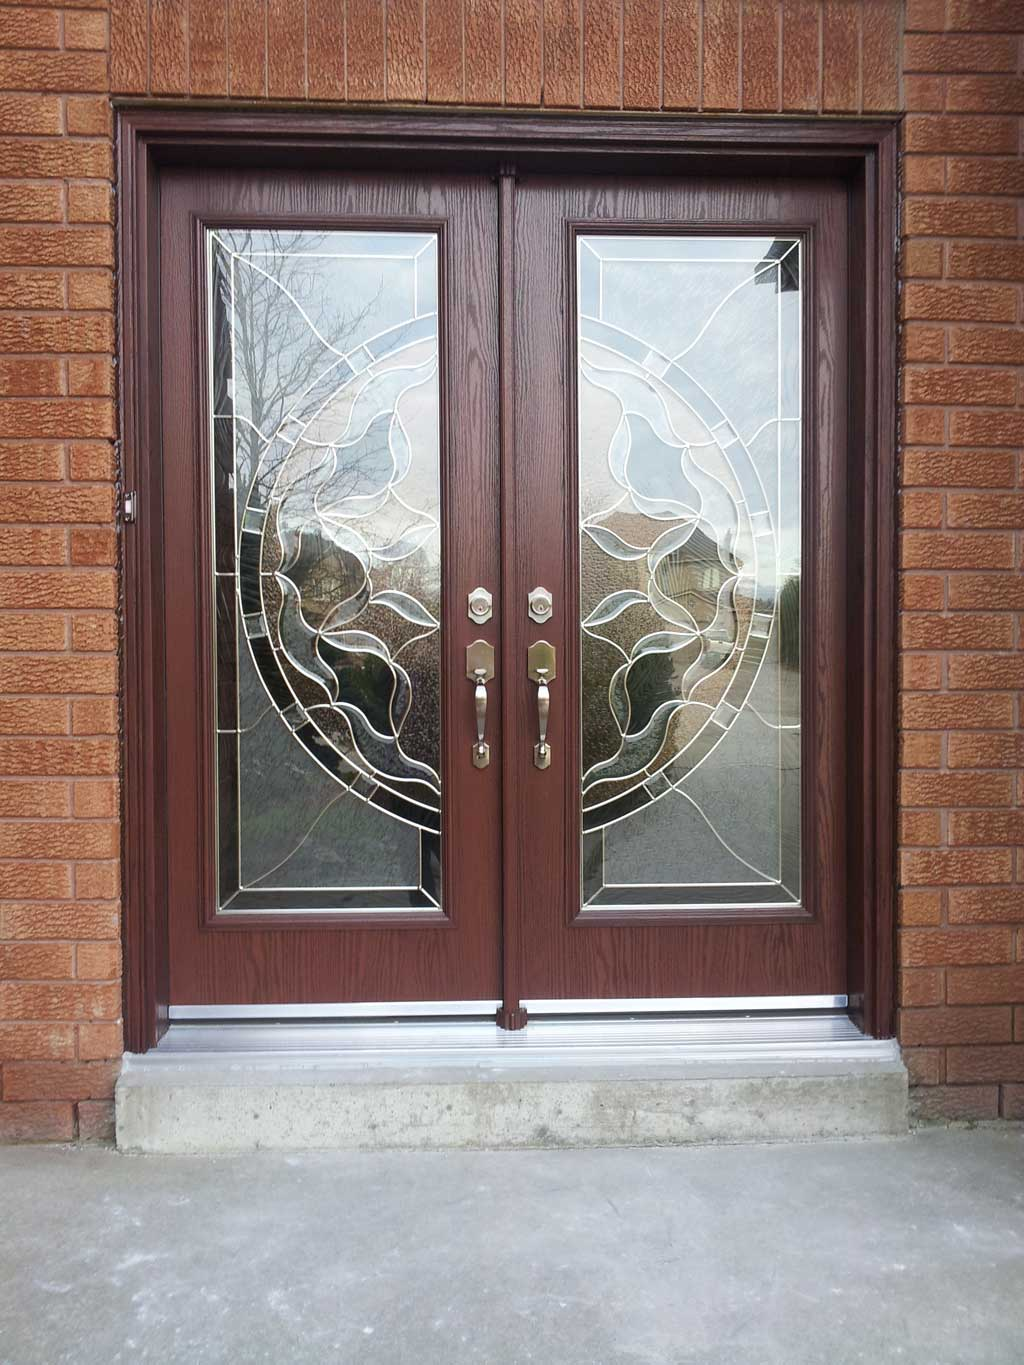 Image of Front Entry Door Showing Woodgrain Double French Doors